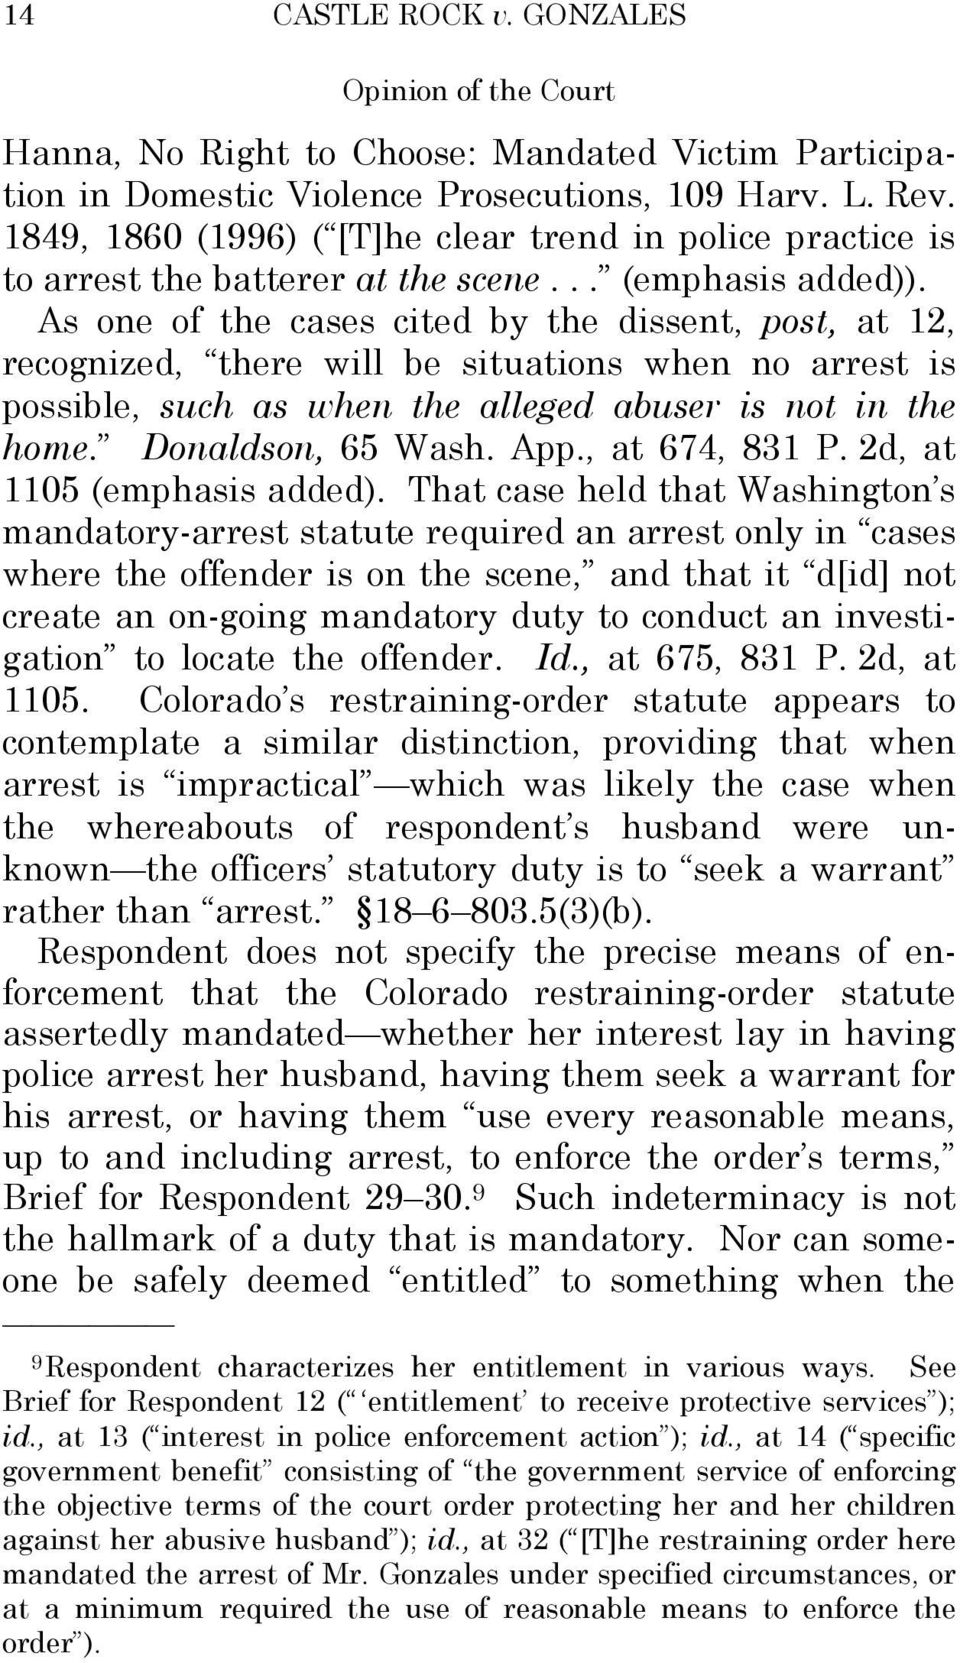 As one of the cases cited by the dissent, post, at 12, recognized, there will be situations when no arrest is possible, such as when the alleged abuser is not in the home. Donaldson, 65 Wash. App.